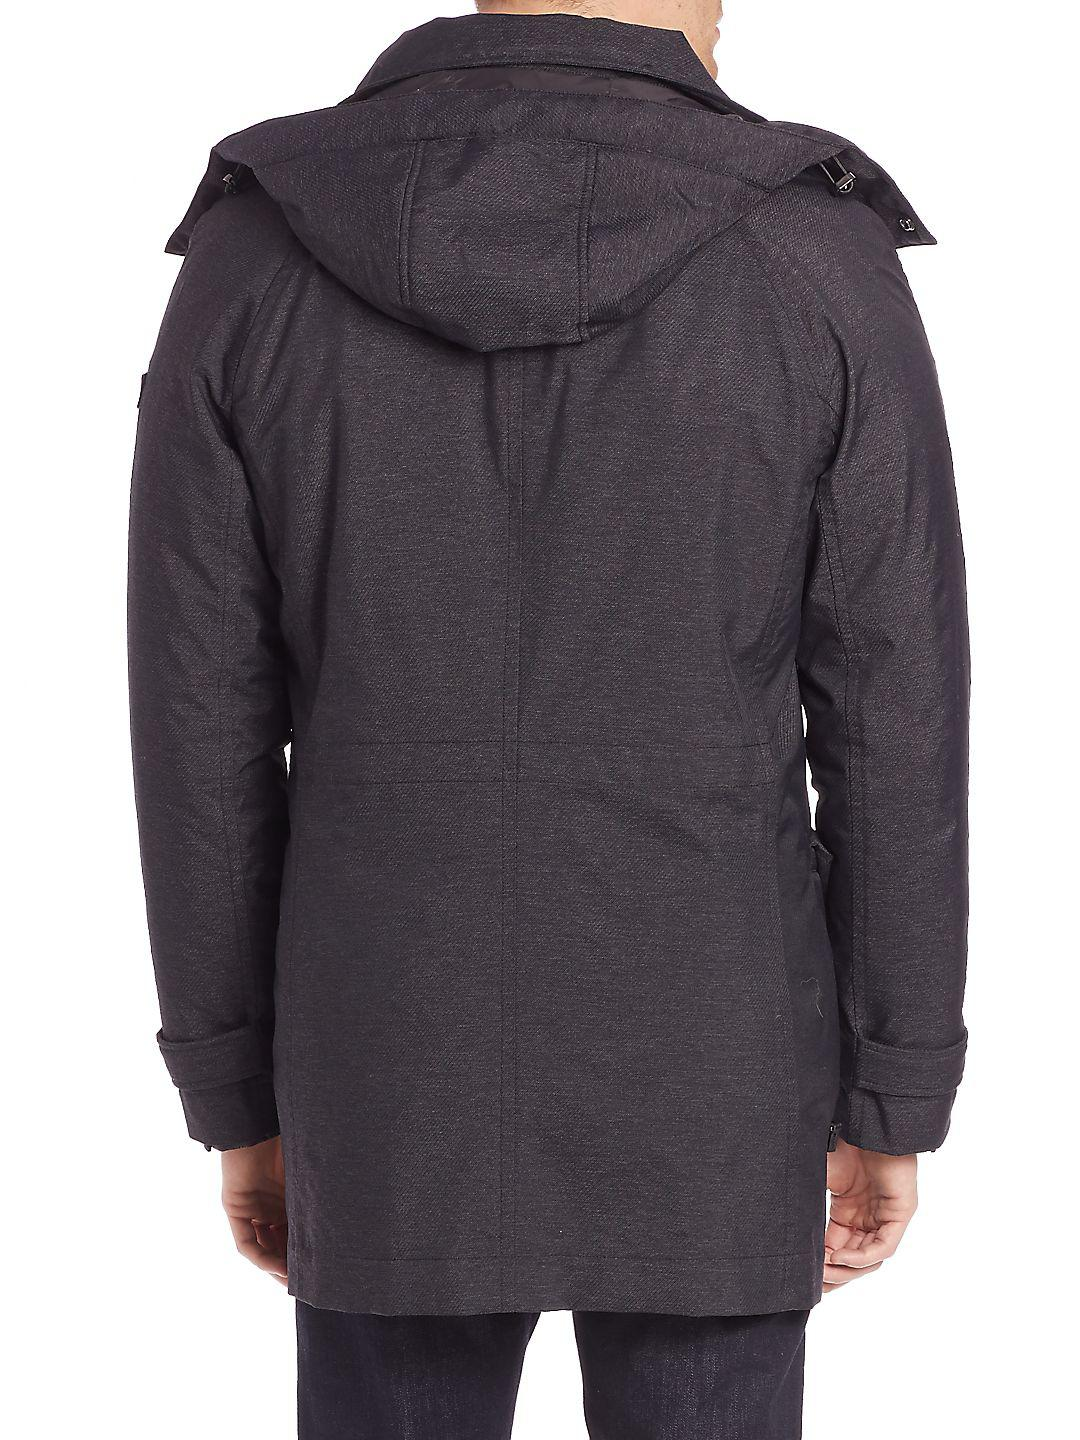 Tumi Synthetic Twill Textured Zip-front Jacket in Charcoal (Grey) for Men